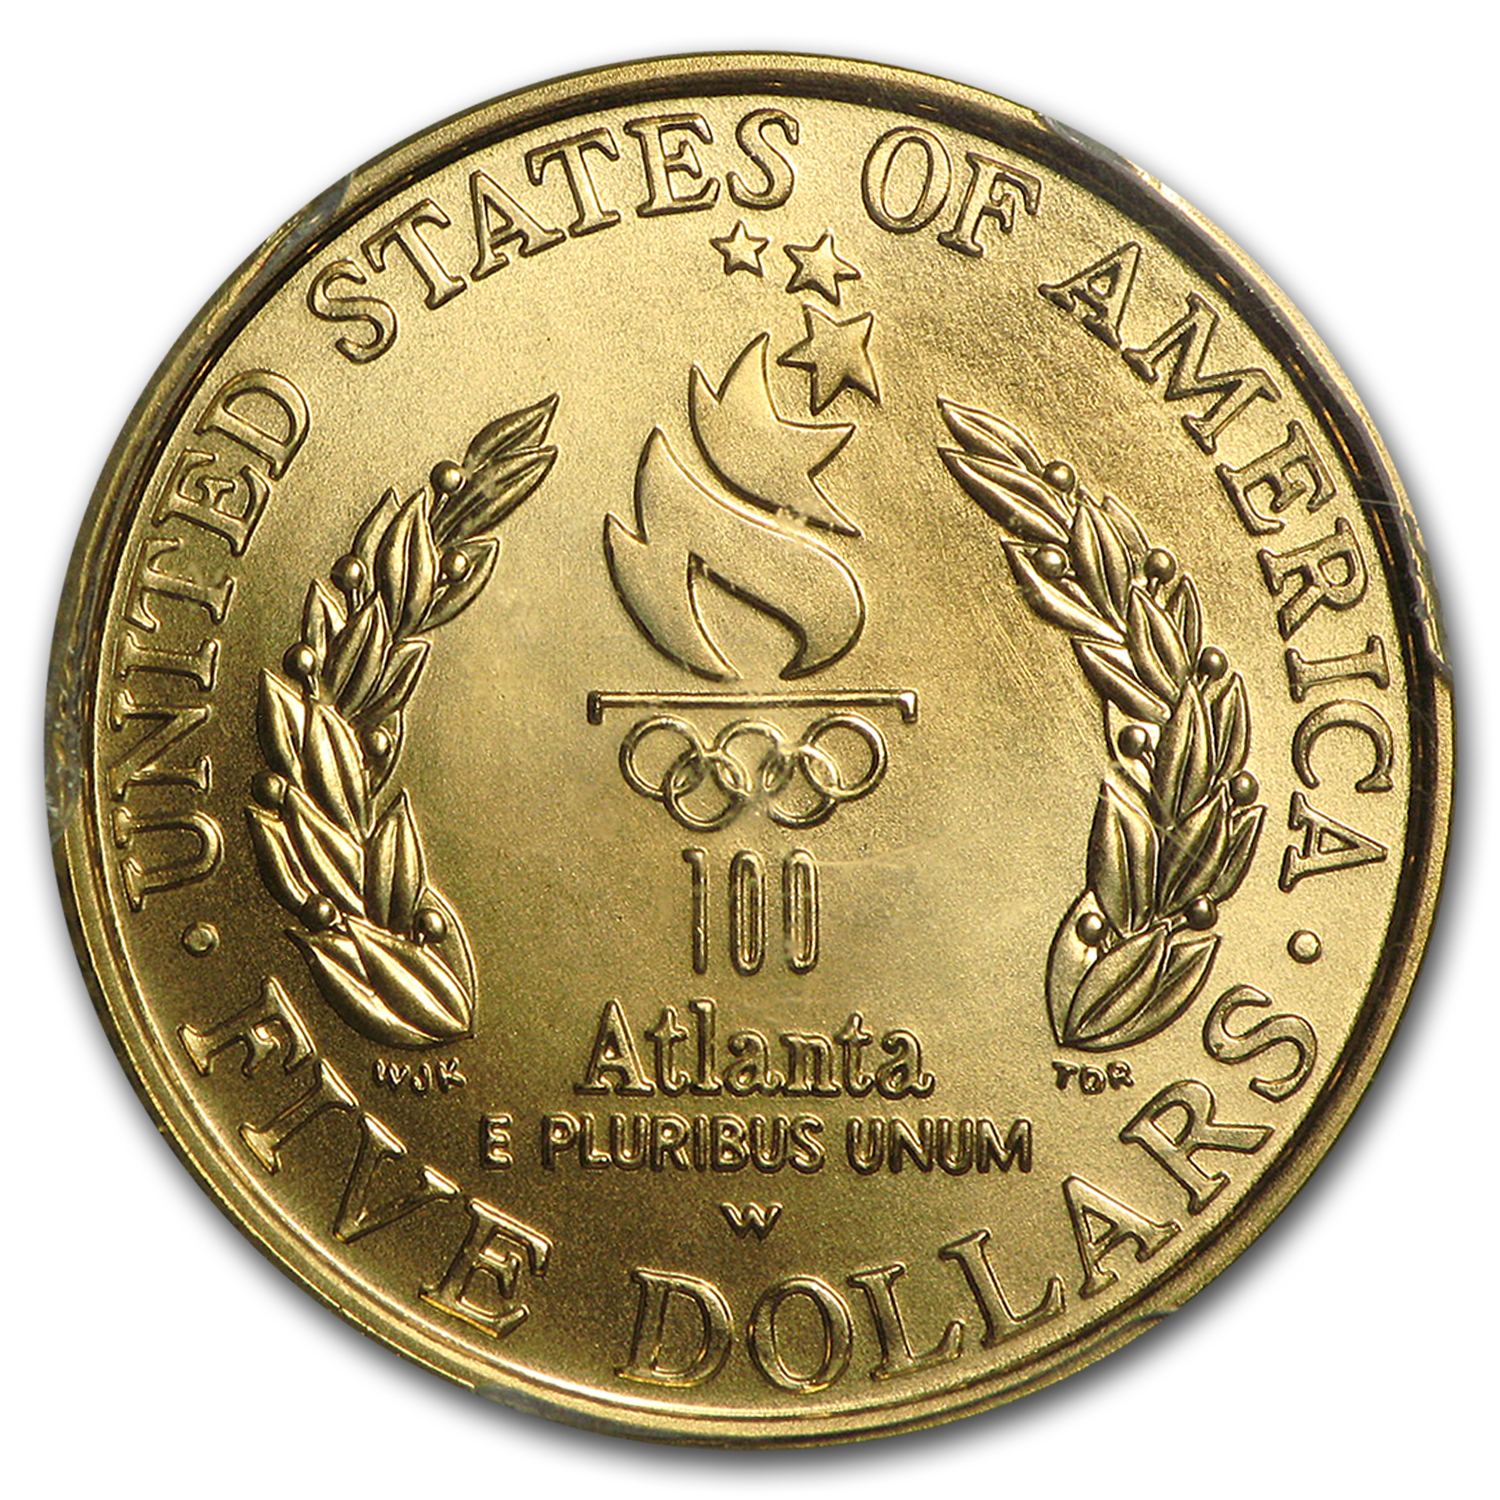 1996-W Flag Bearer - $5 Gold Commemorative - MS-69 PCGS